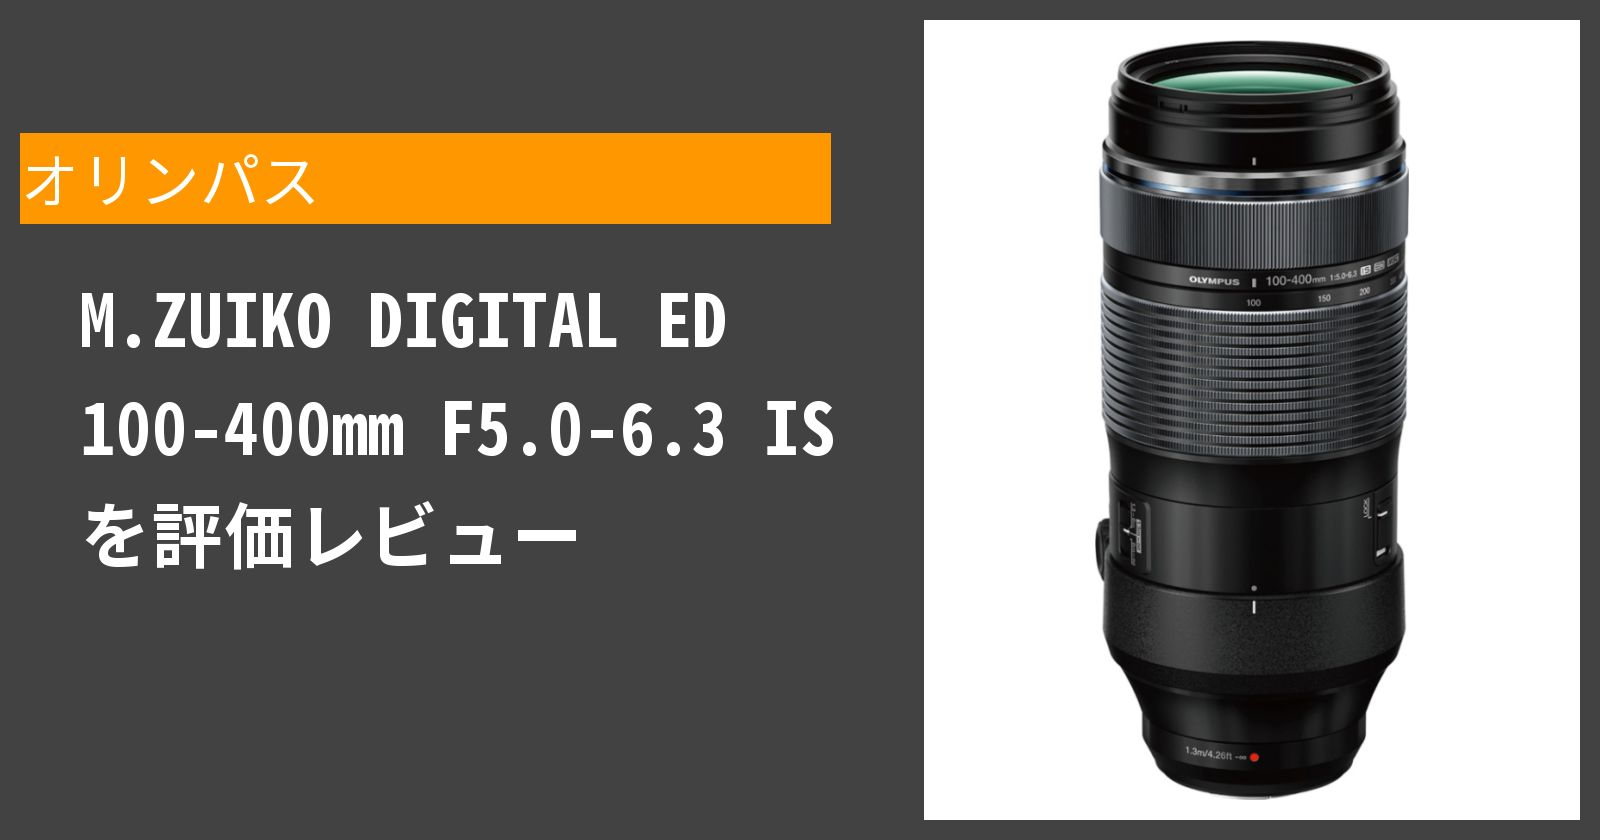 M.ZUIKO DIGITAL ED 100-400mm F5.0-6.3 ISを徹底評価